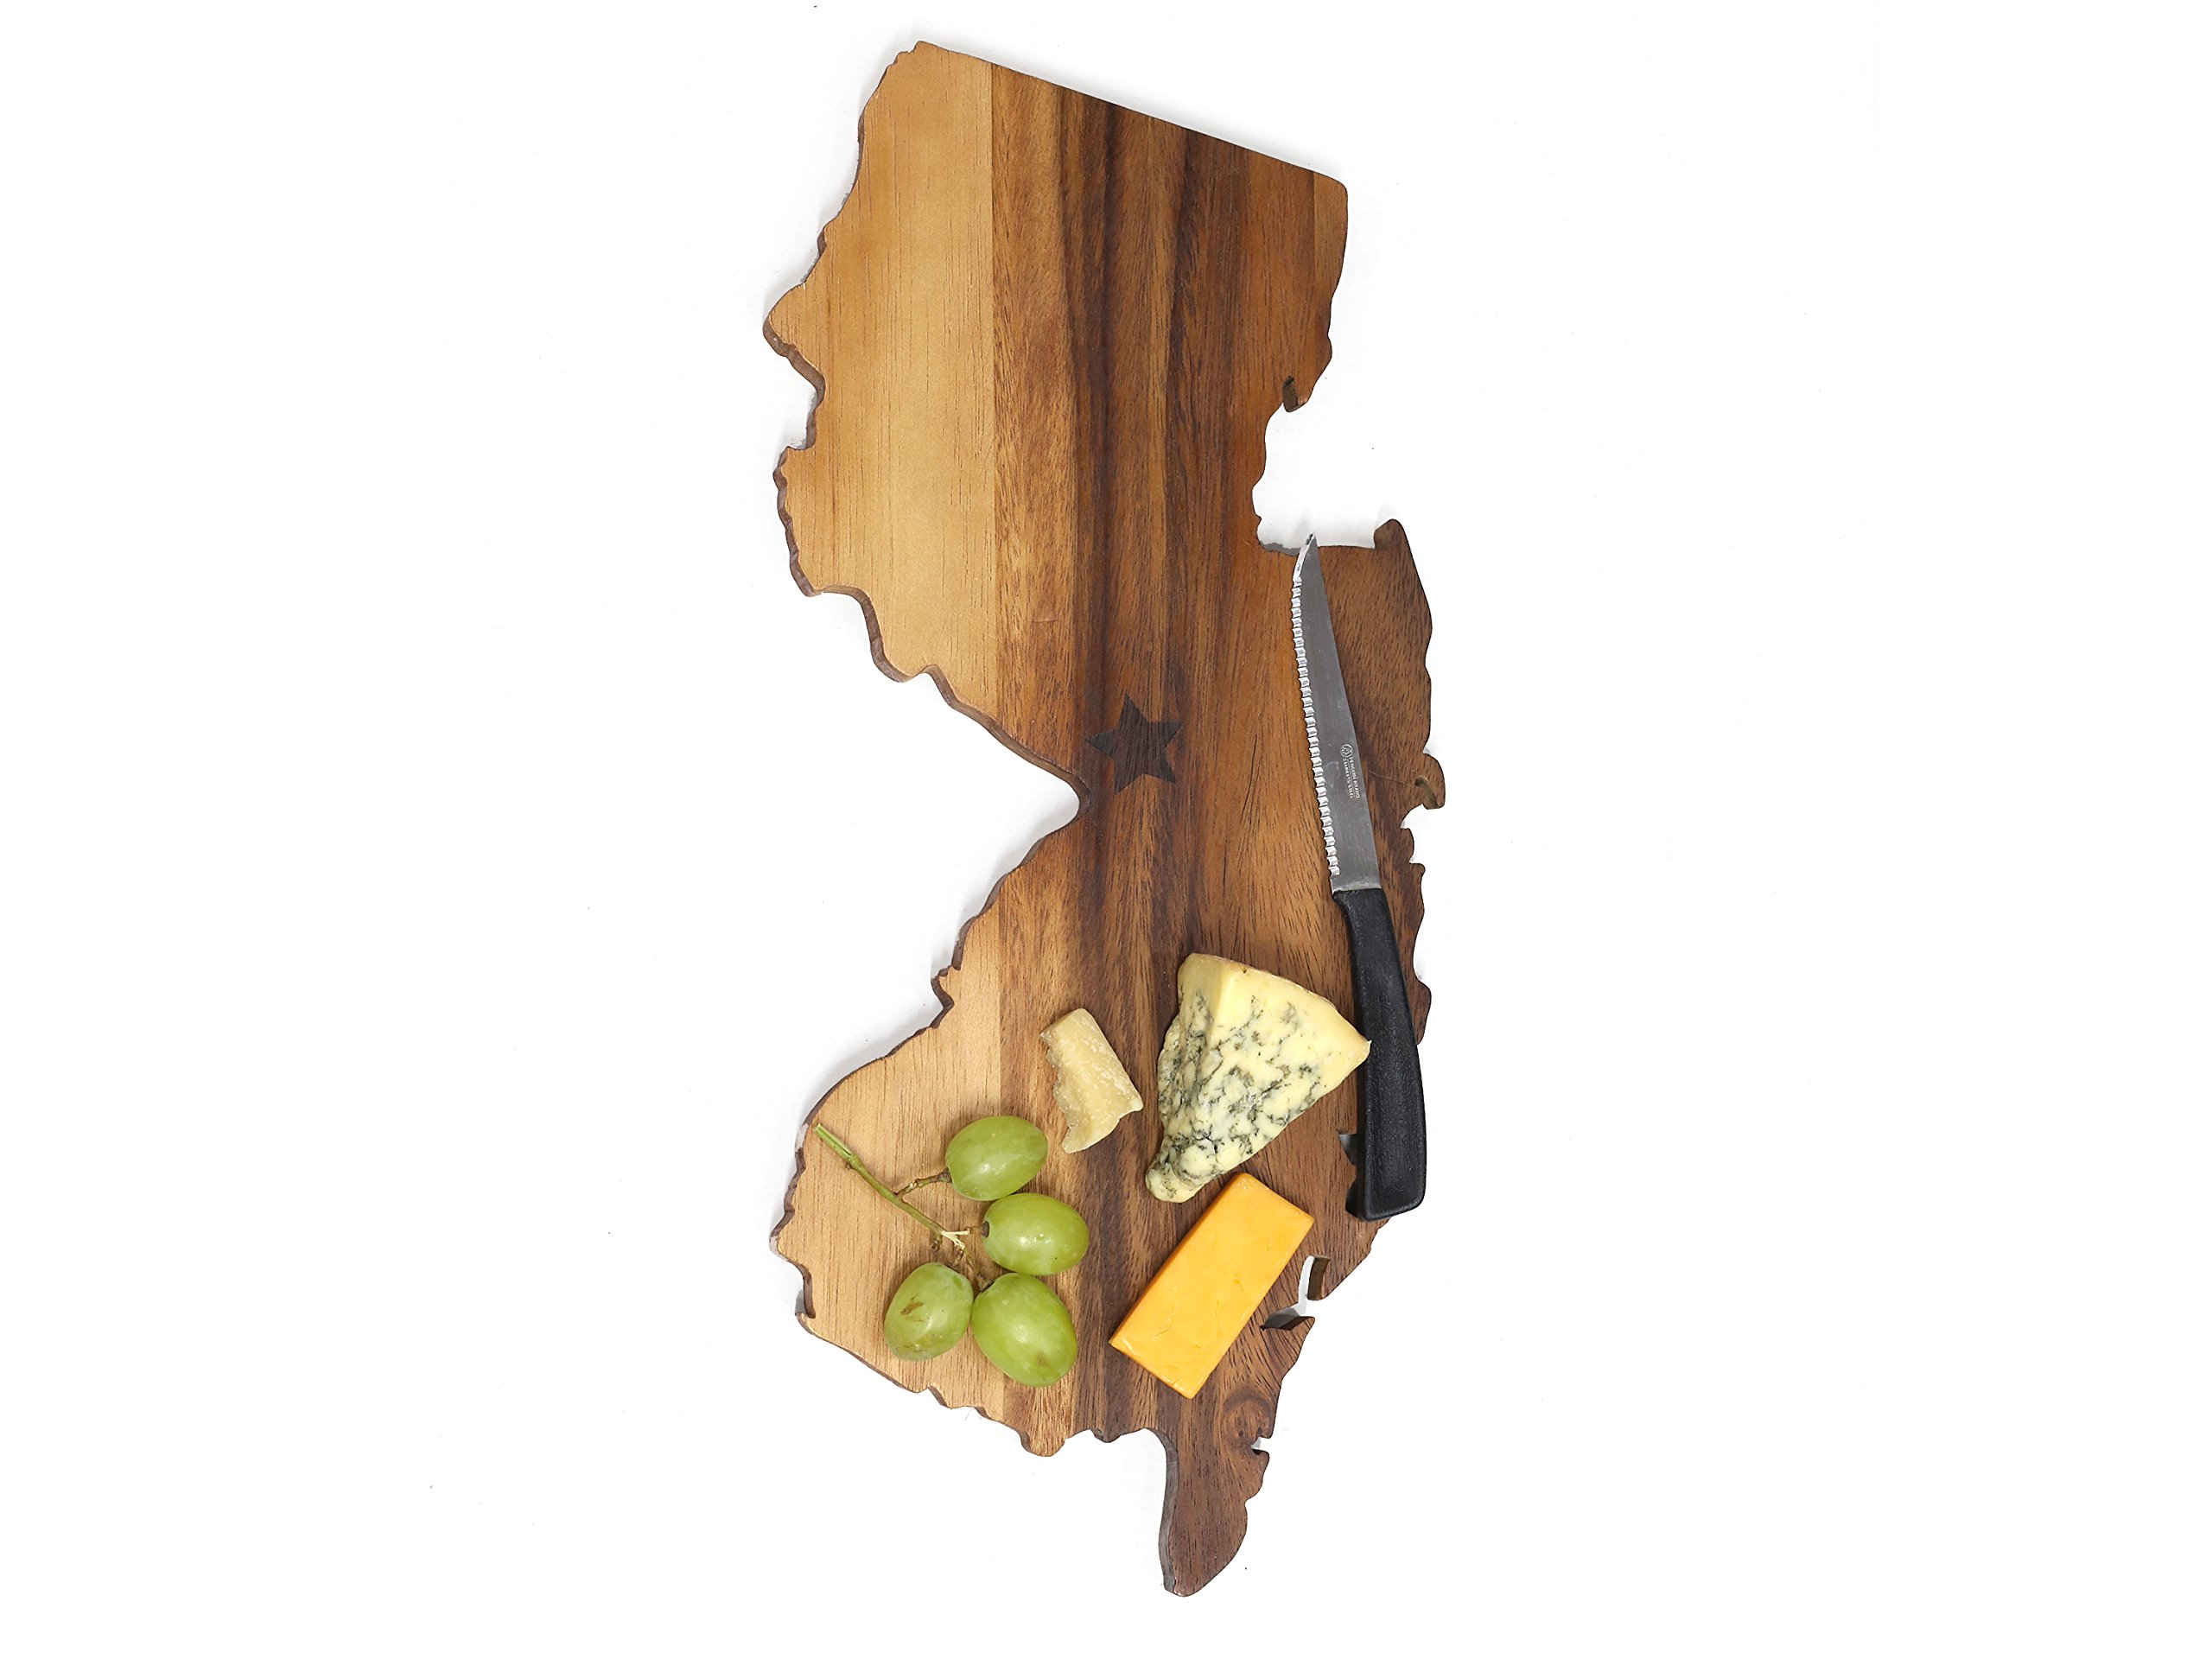 New Jersey Cutting Board: Premium-grade Custom Wooden Chopping or Cheese Board from SiamMandalay